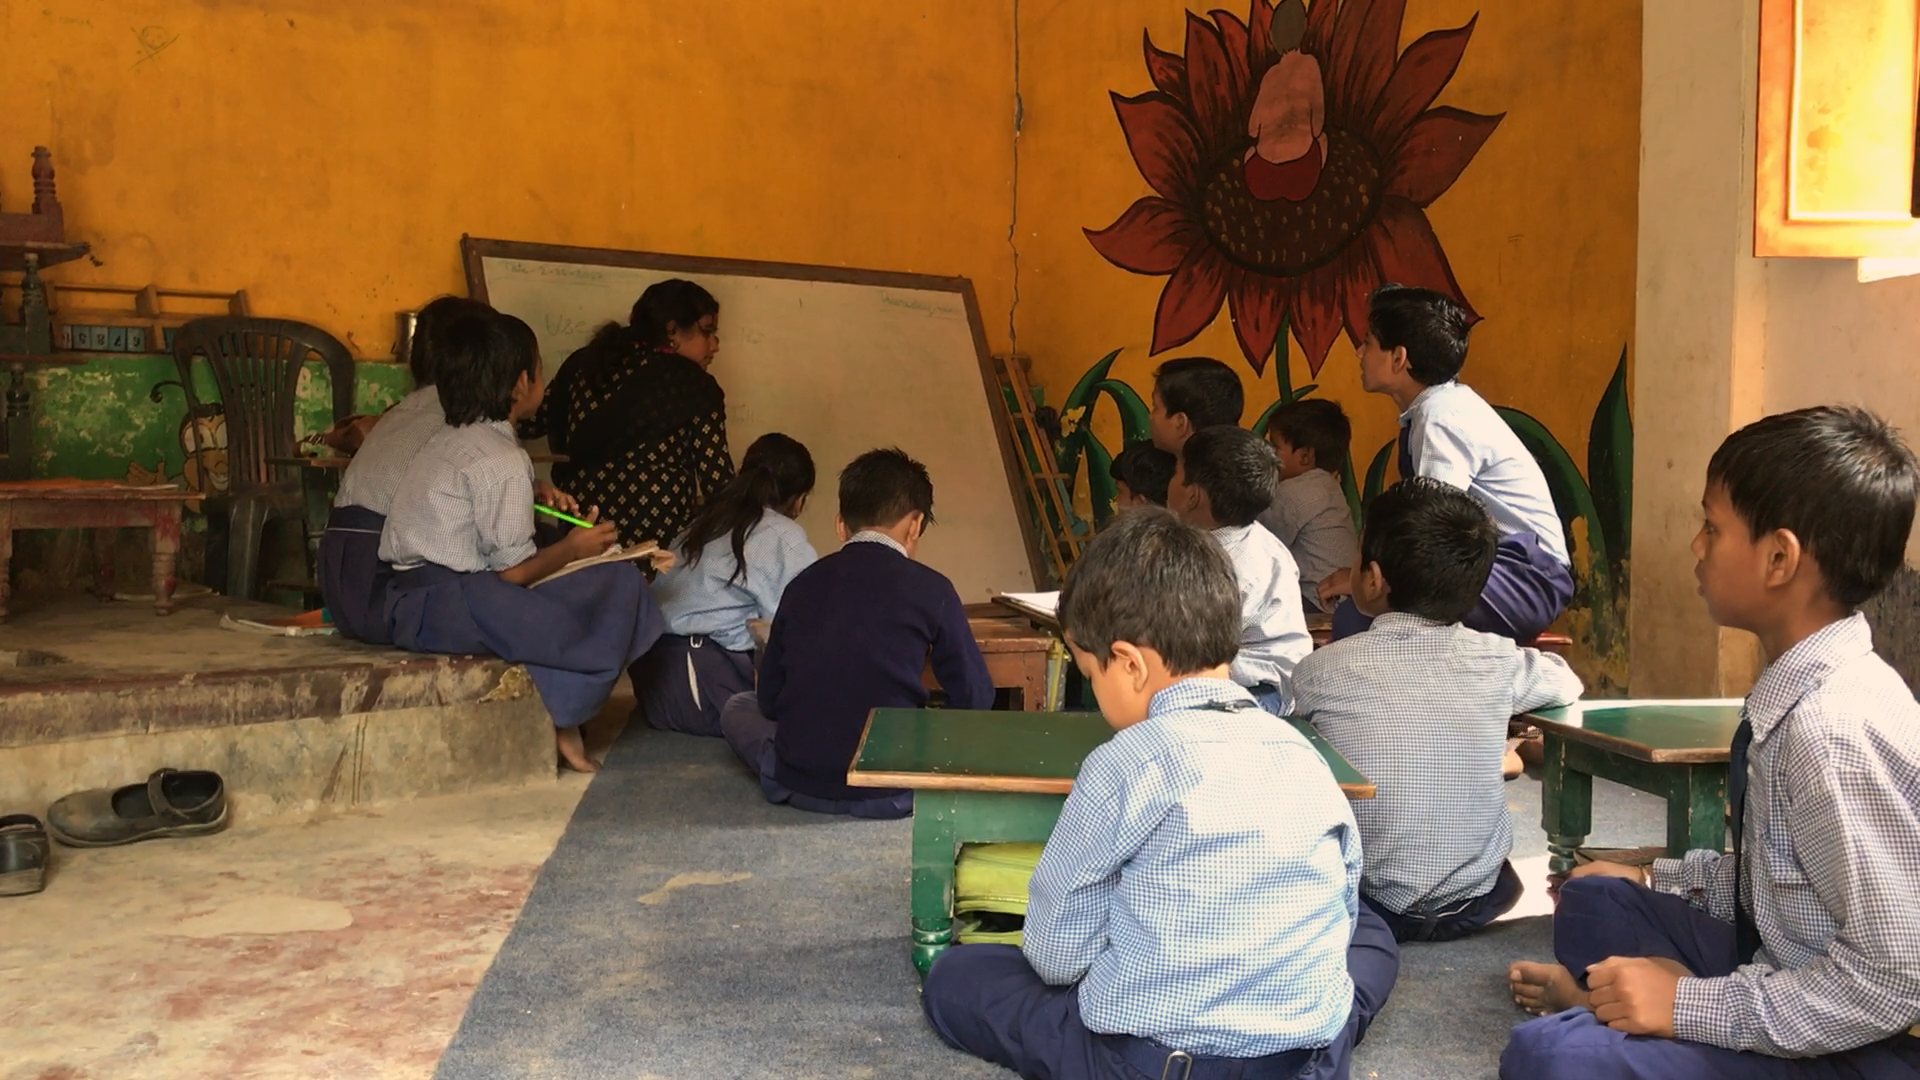 Pooja teaching her Class 2 students in the shed